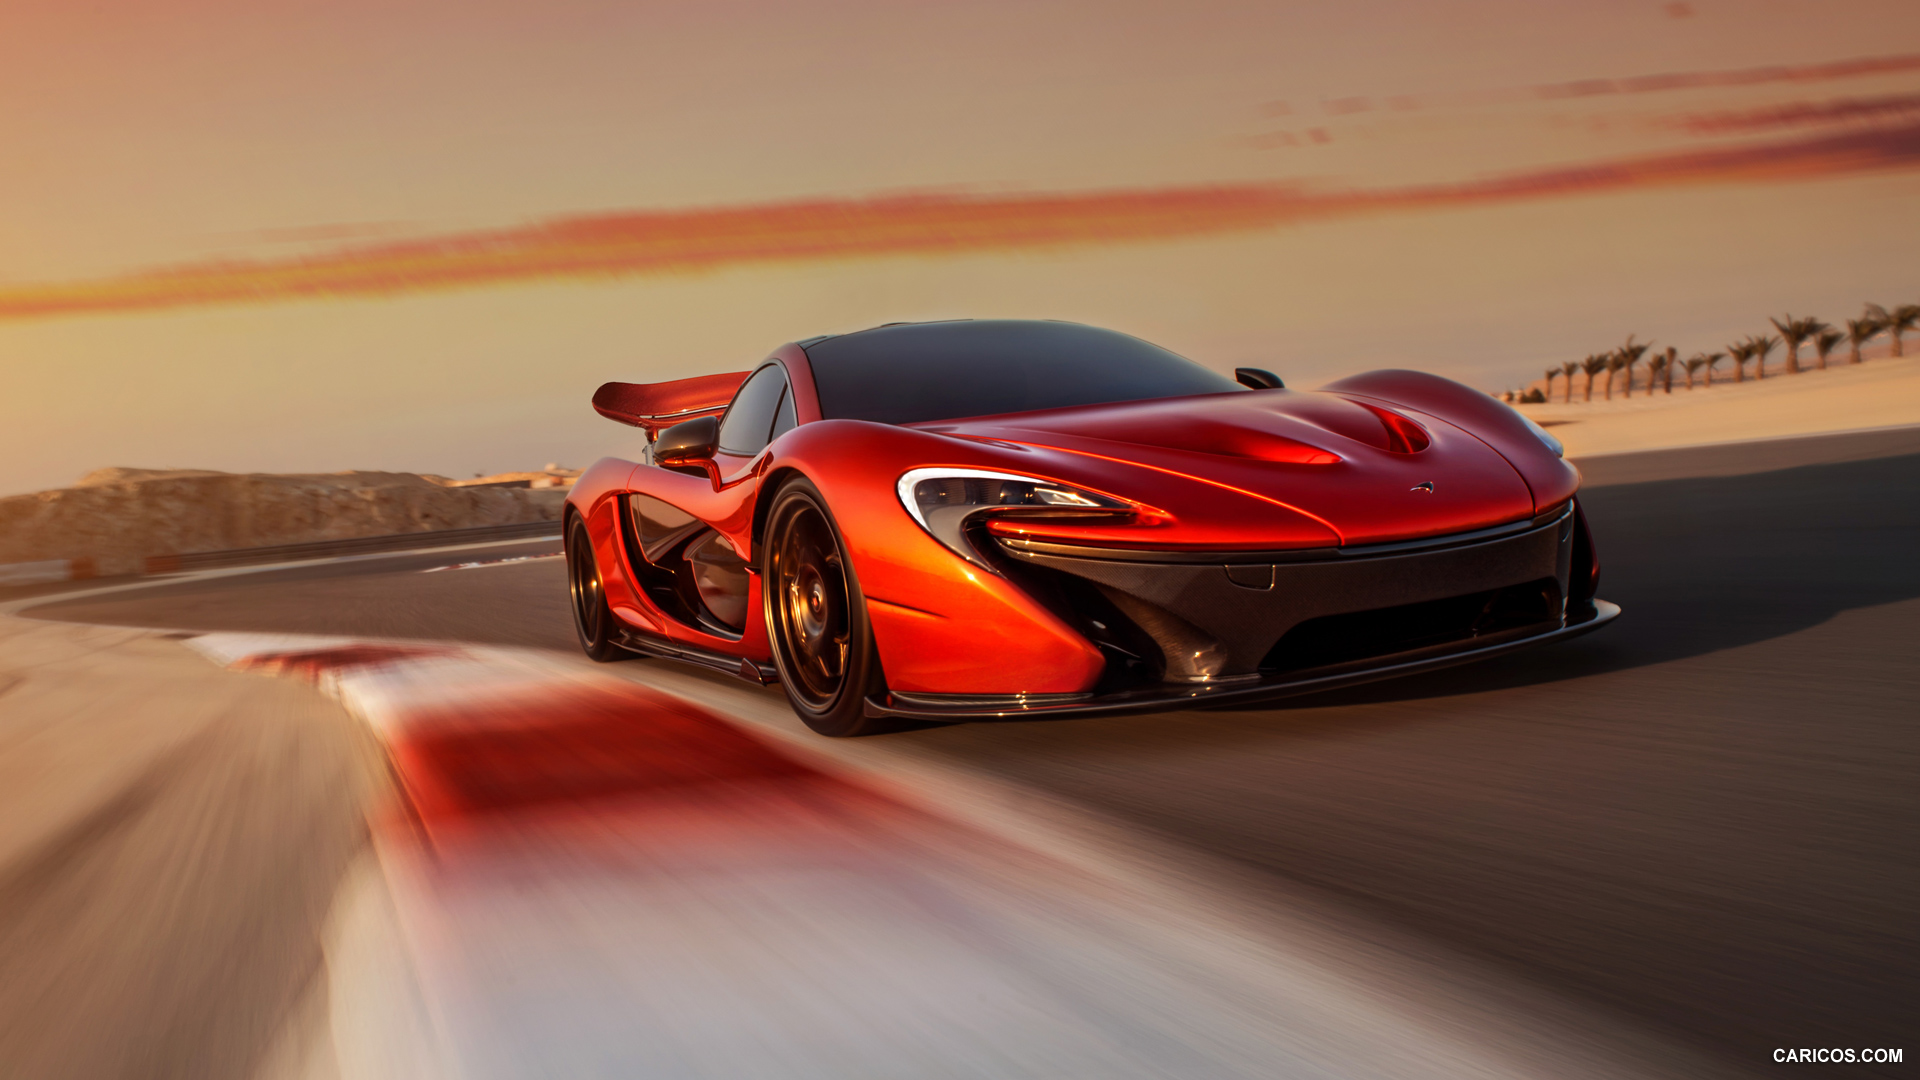 2014 McLaren P1 - Front | HD Wallpaper #14